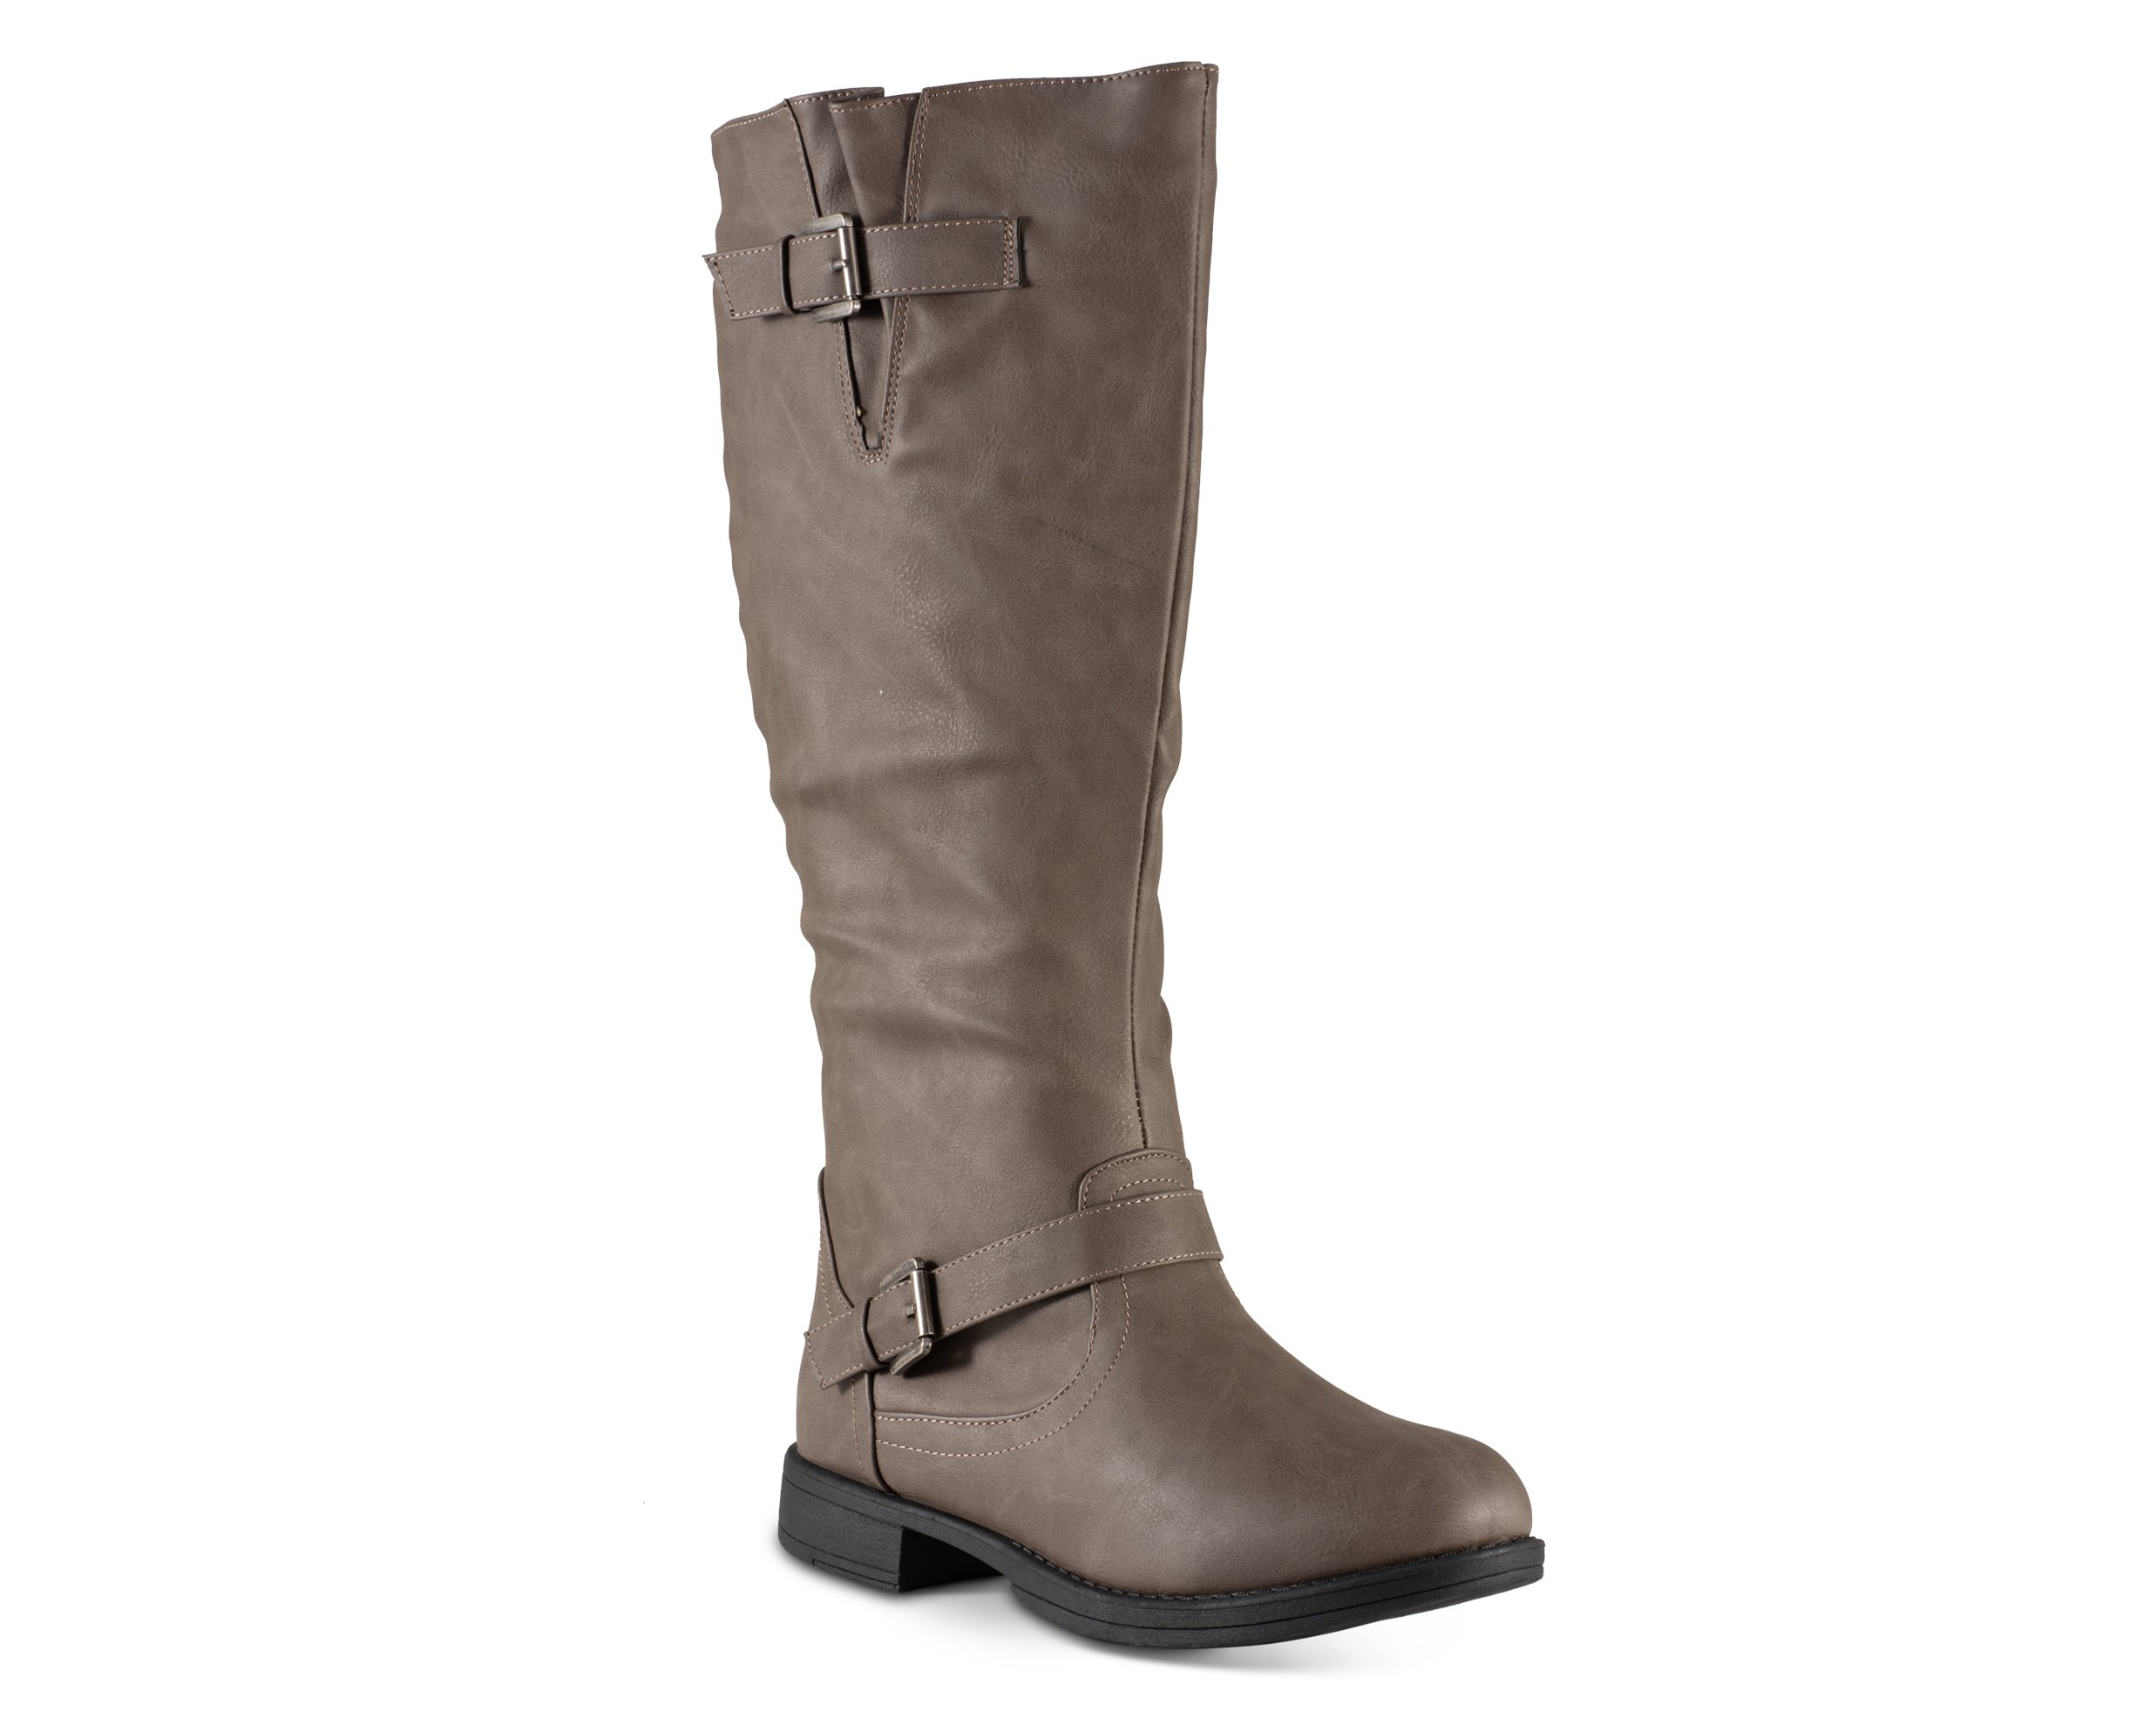 Twisted Women's Amira Wide Calf Knee-High Riding Boot- Grey, Size 9